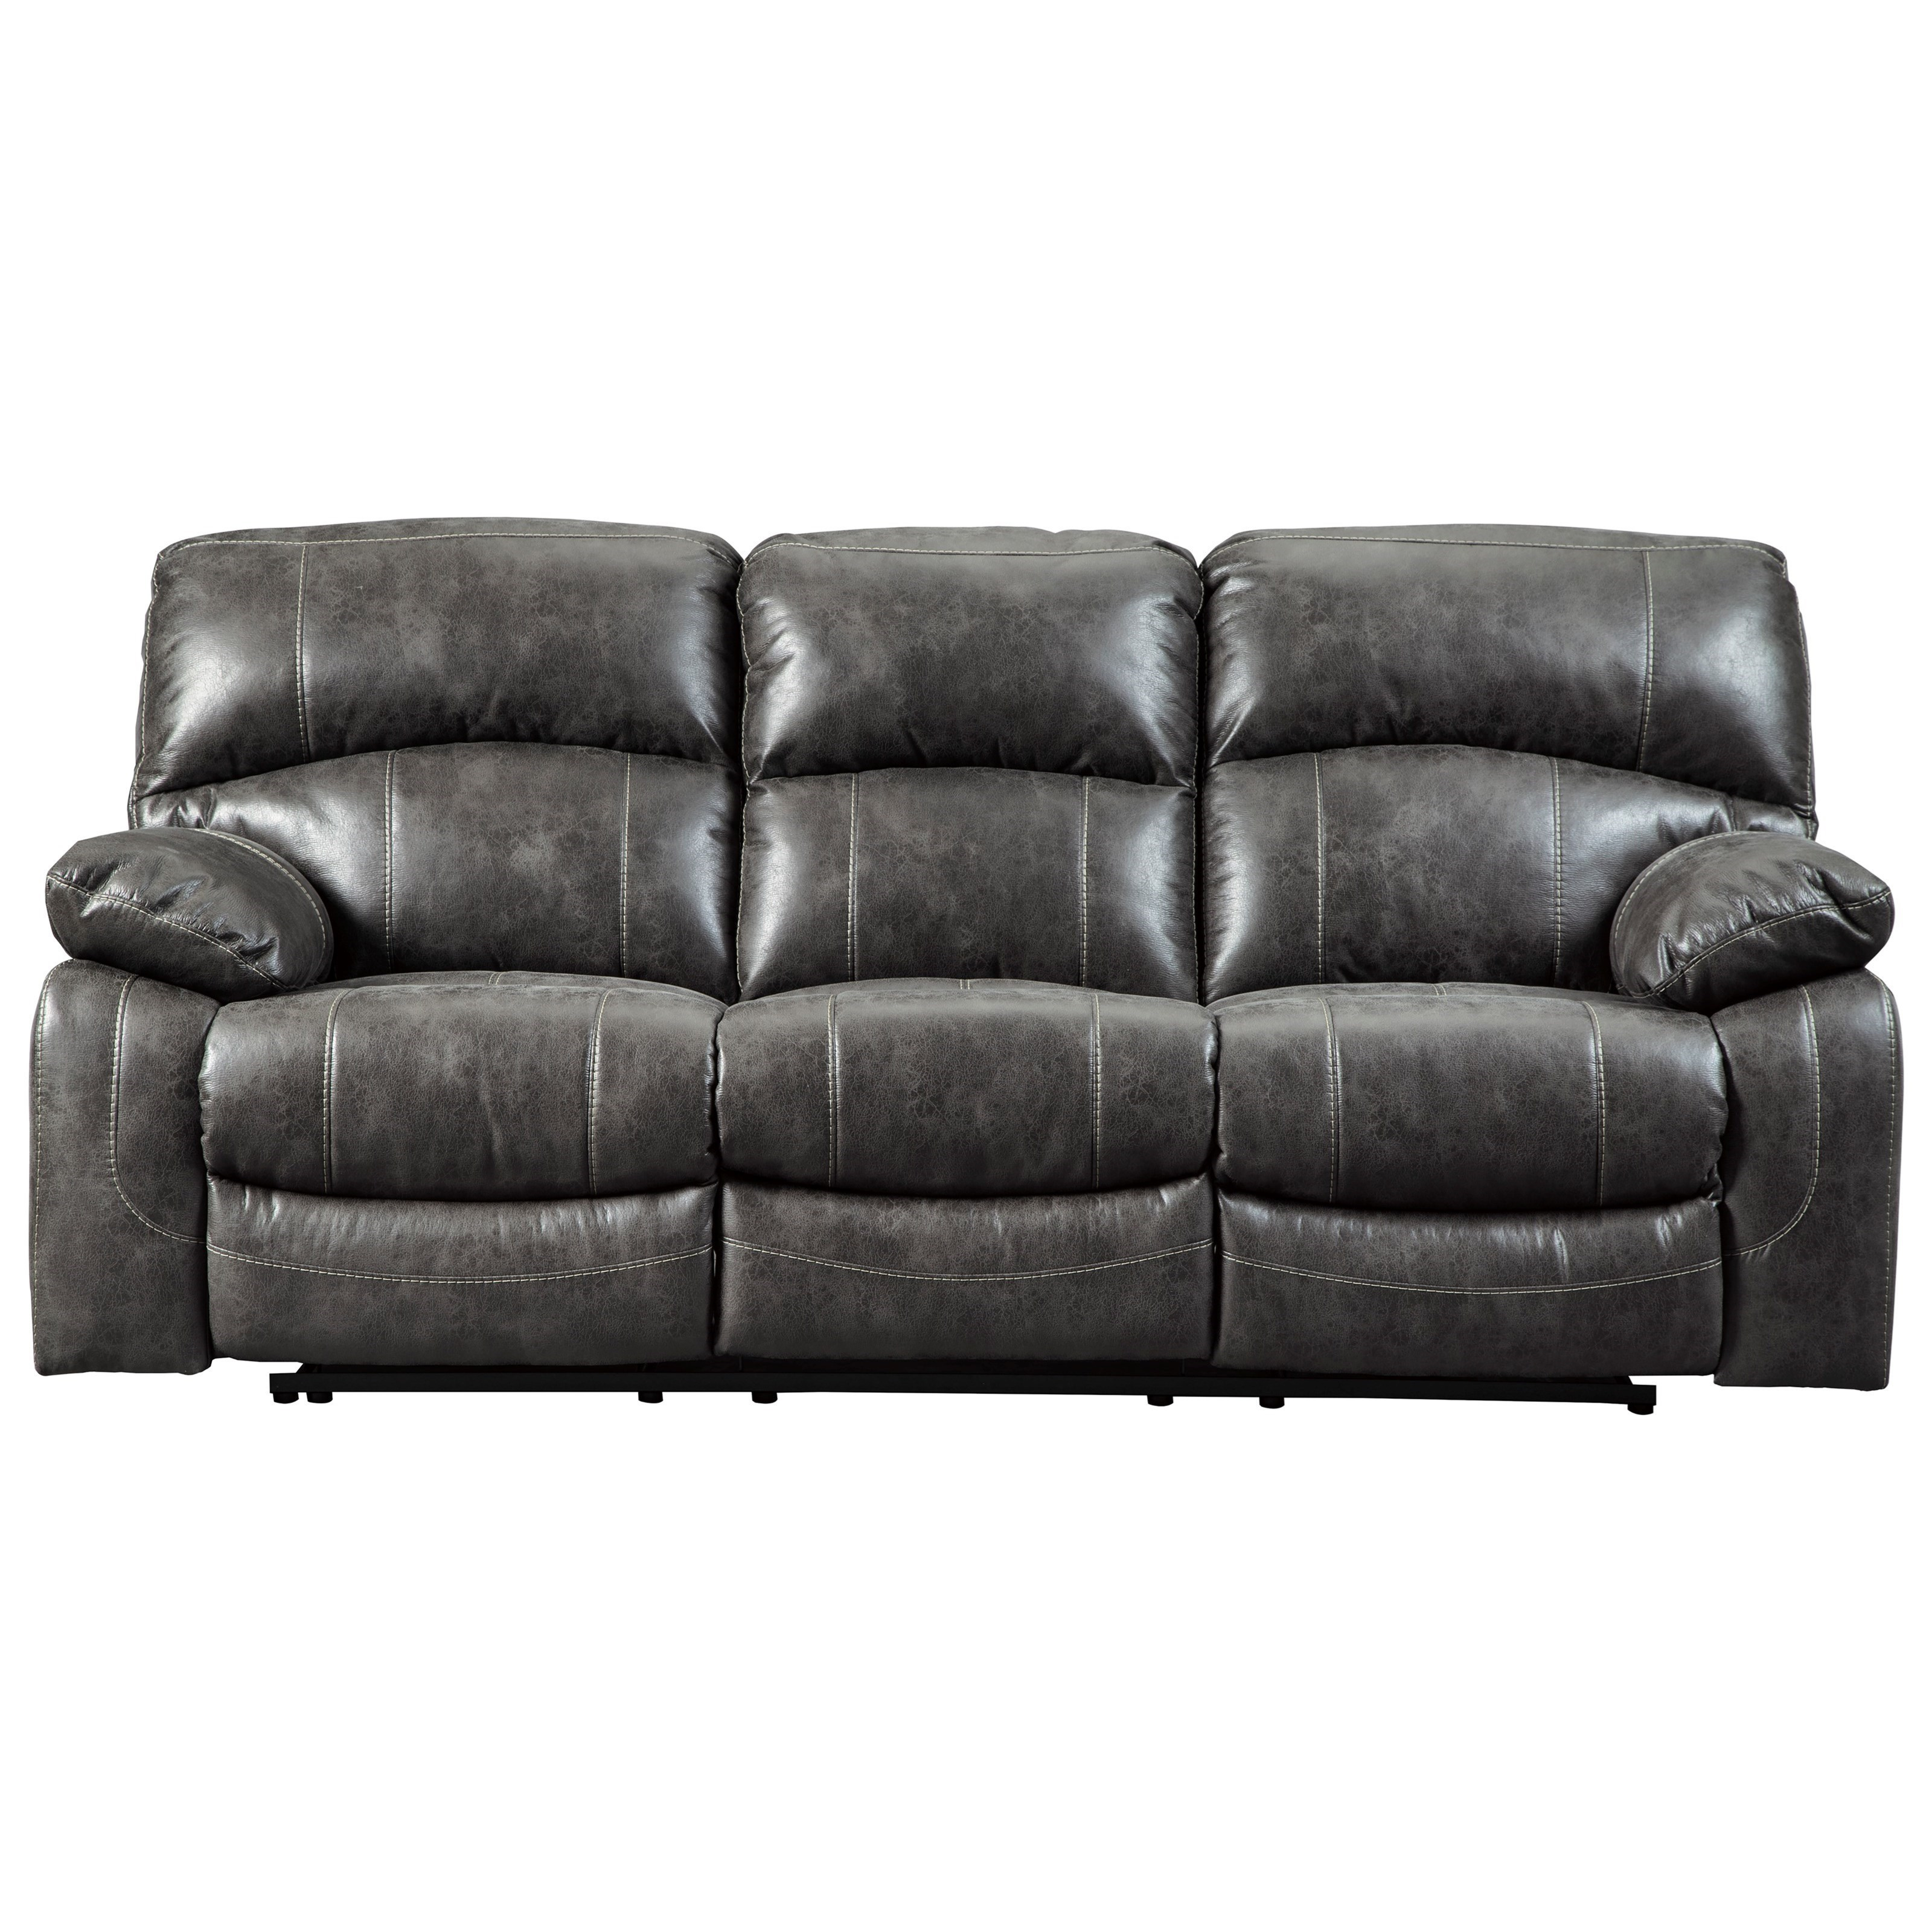 signature design by ashley dunwell 5160115 faux leather power rh beckerfurnitureworld com power recliners sectional sofas best power sofa recliners